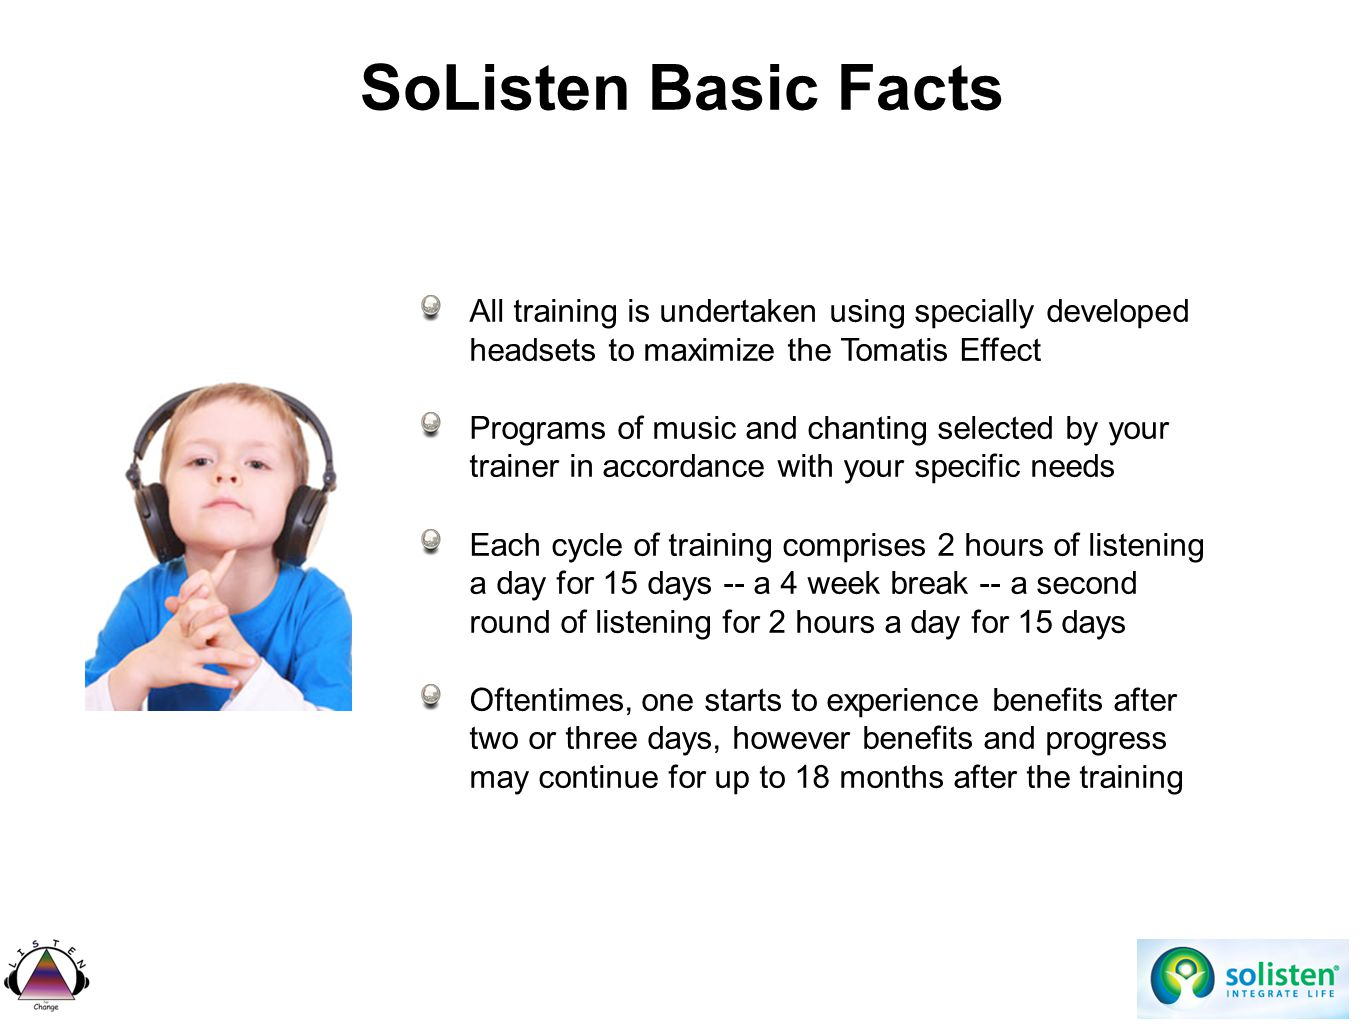 SoListen Basic Facts All training is undertaken using specially developed headsets to maximize the Tomatis Effect Programs of music and chanting selected by your trainer in accordance with your specific needs Each cycle of training comprises 2 hours of listening a day for 15 days -- a 4 week break -- a second round of listening for 2 hours a day for 15 days Oftentimes, one starts to experience benefits after two or three days, however benefits and progress may continue for up to 18 months after the training